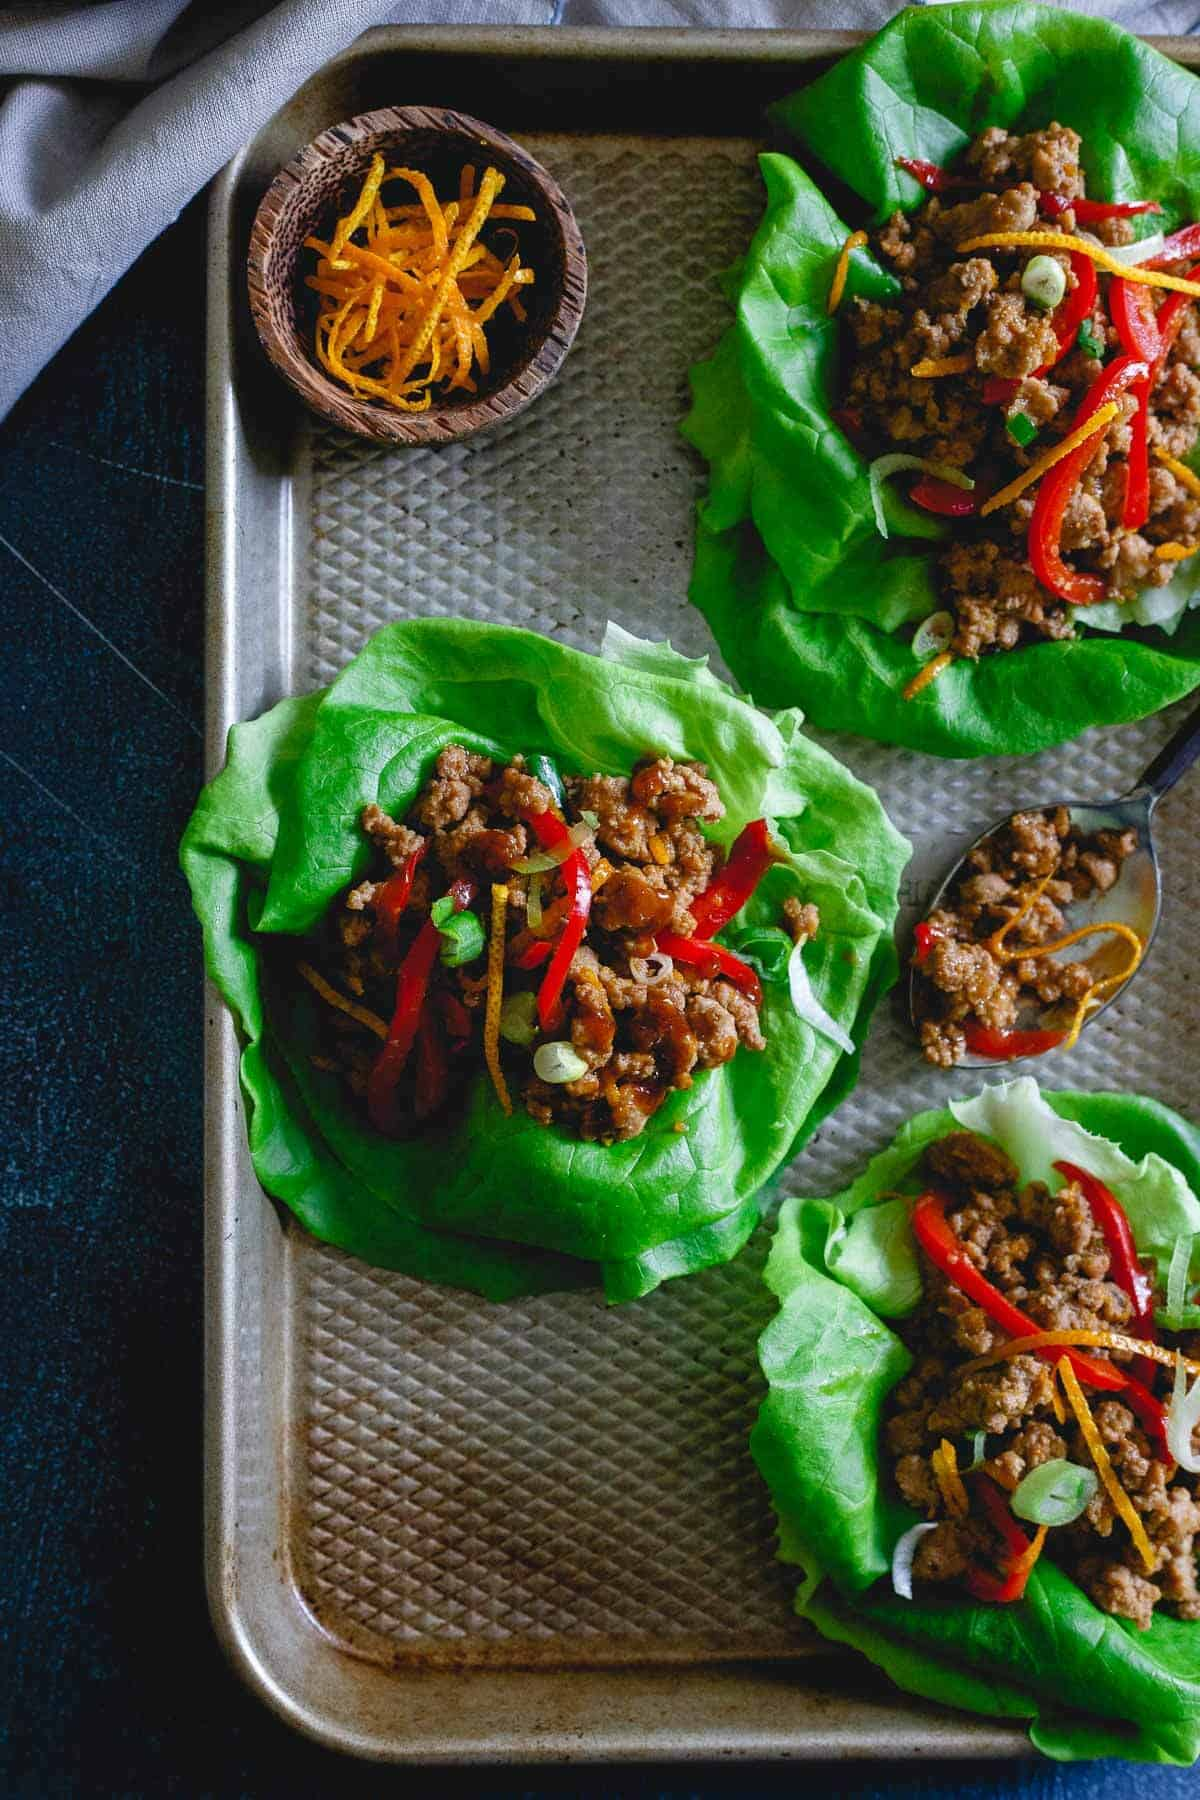 These turkey Asian lettuce wraps are infused with a sticky, sweet, savory and slightly spicy orange sauce making them an irresistibly easy and tasty meal.